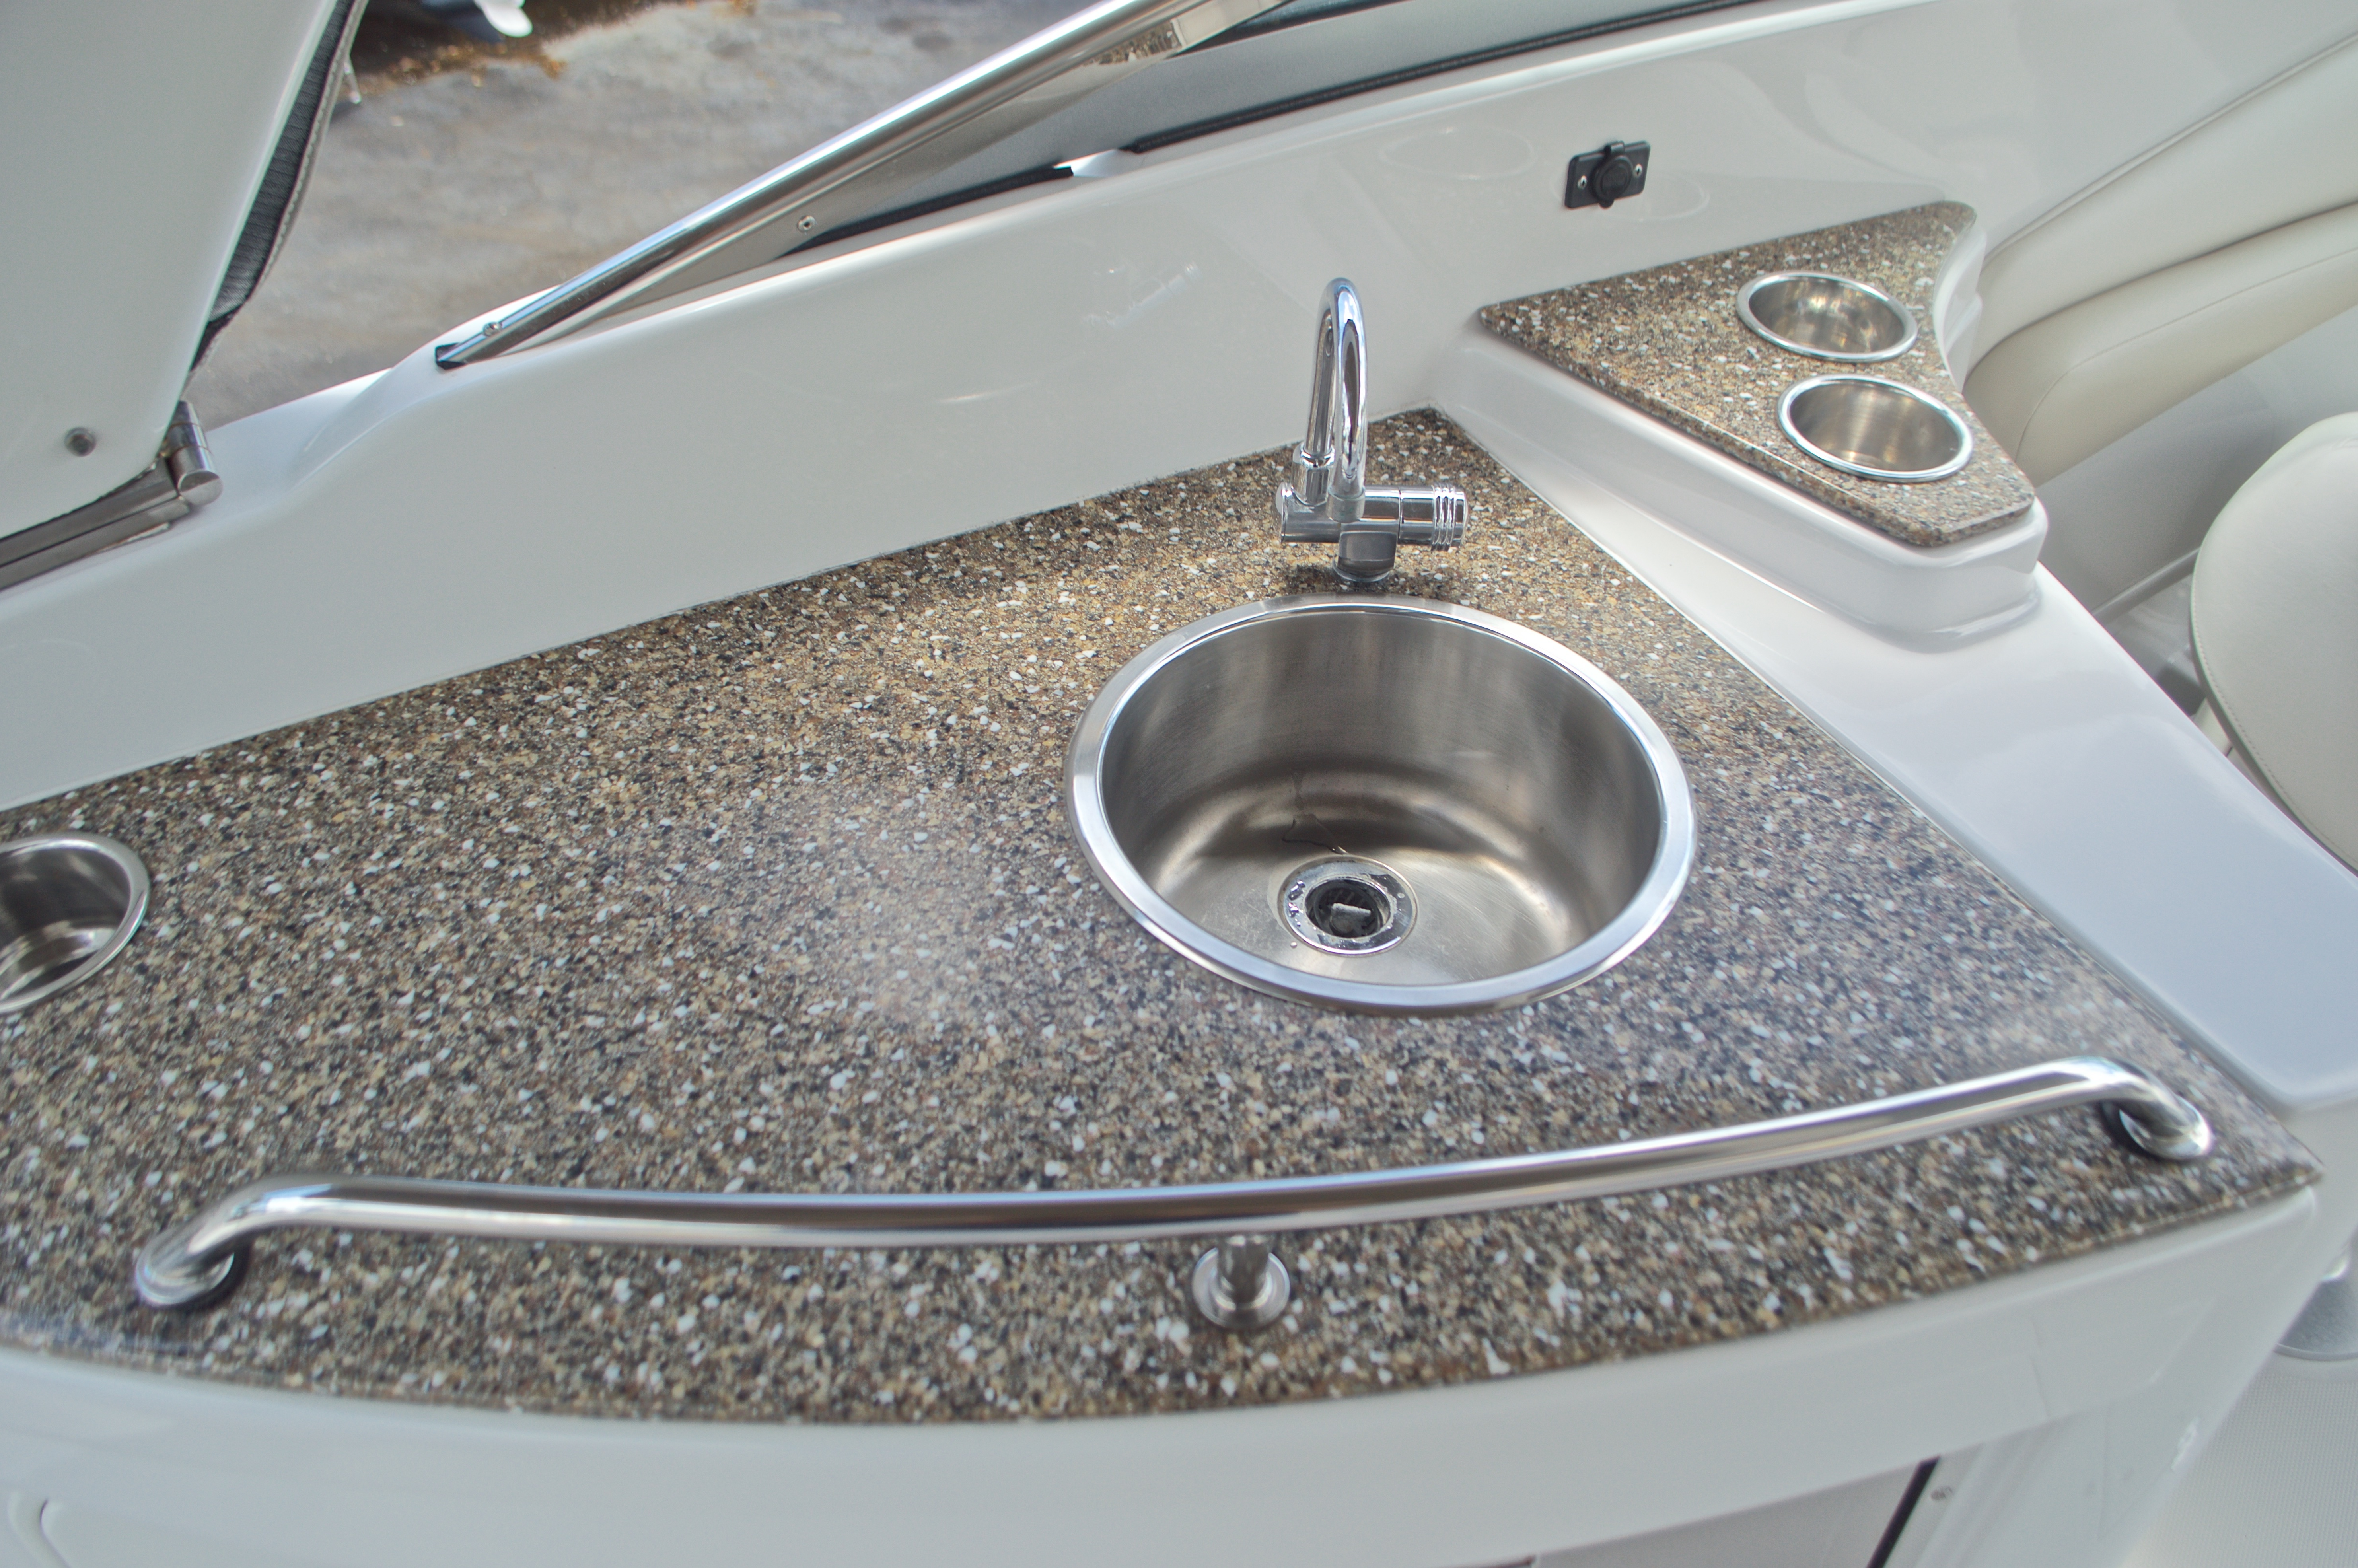 Thumbnail 35 for Used 2009 Crownline 300 LS boat for sale in West Palm Beach, FL